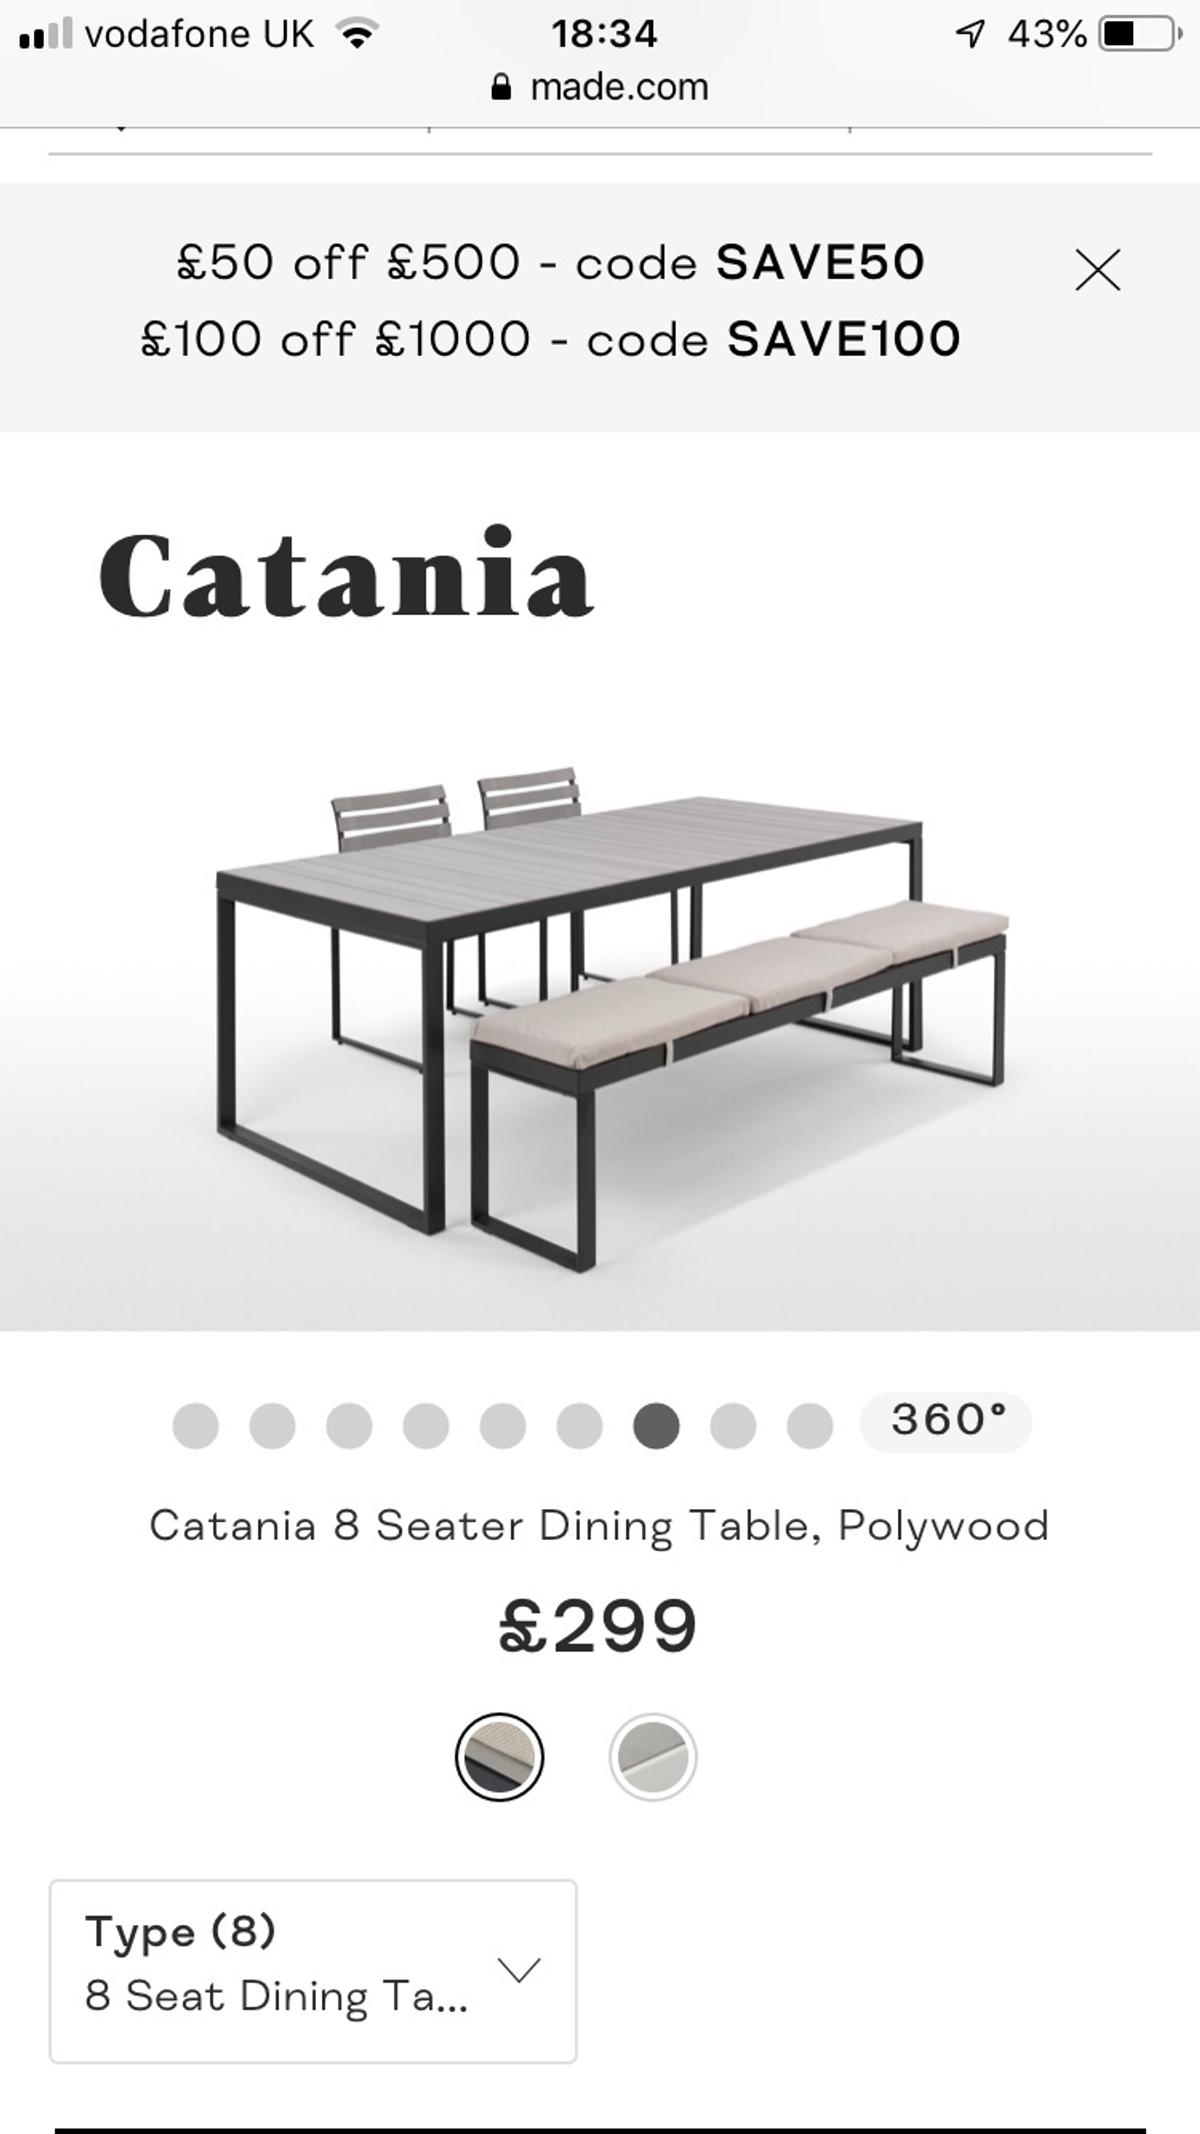 Tables With 2 Benches With Cushions Made Com In London Fur 350 00 Zum Verkauf Shpock At